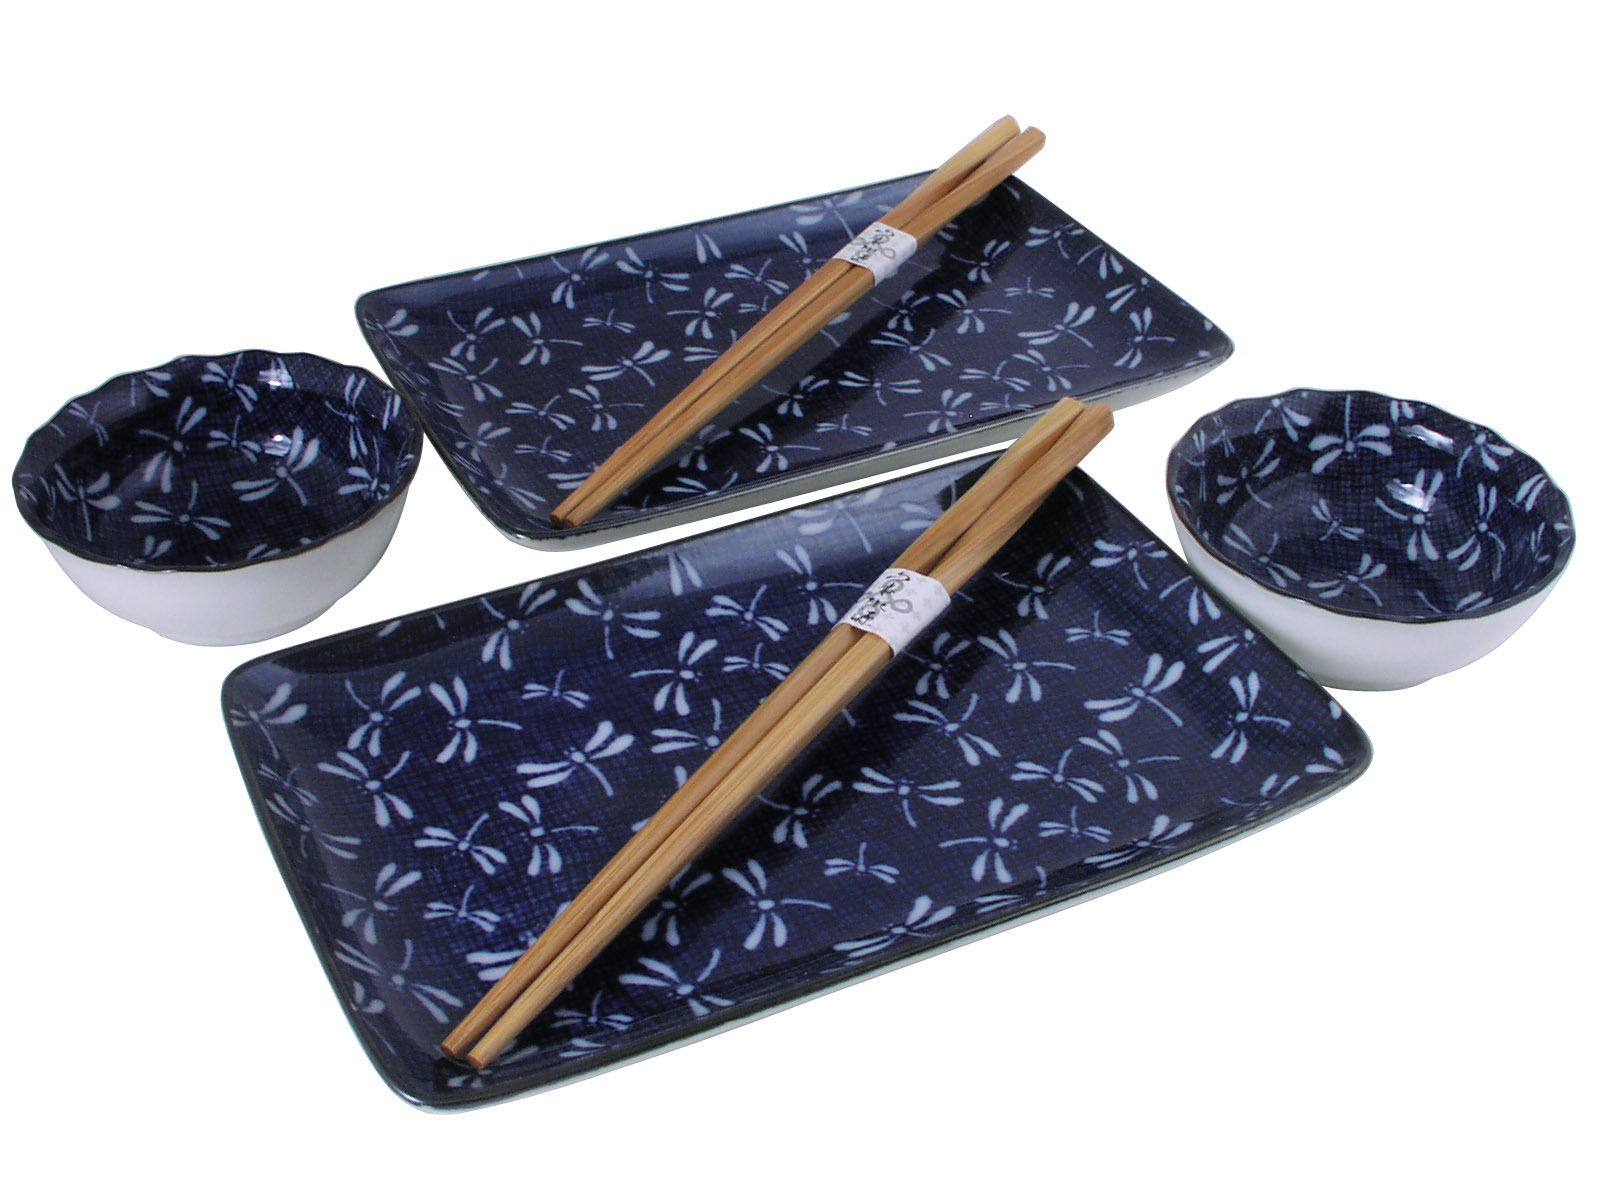 Blue Spring Dance of the Dragonfly Japanese Sushi Dinnerware for Two